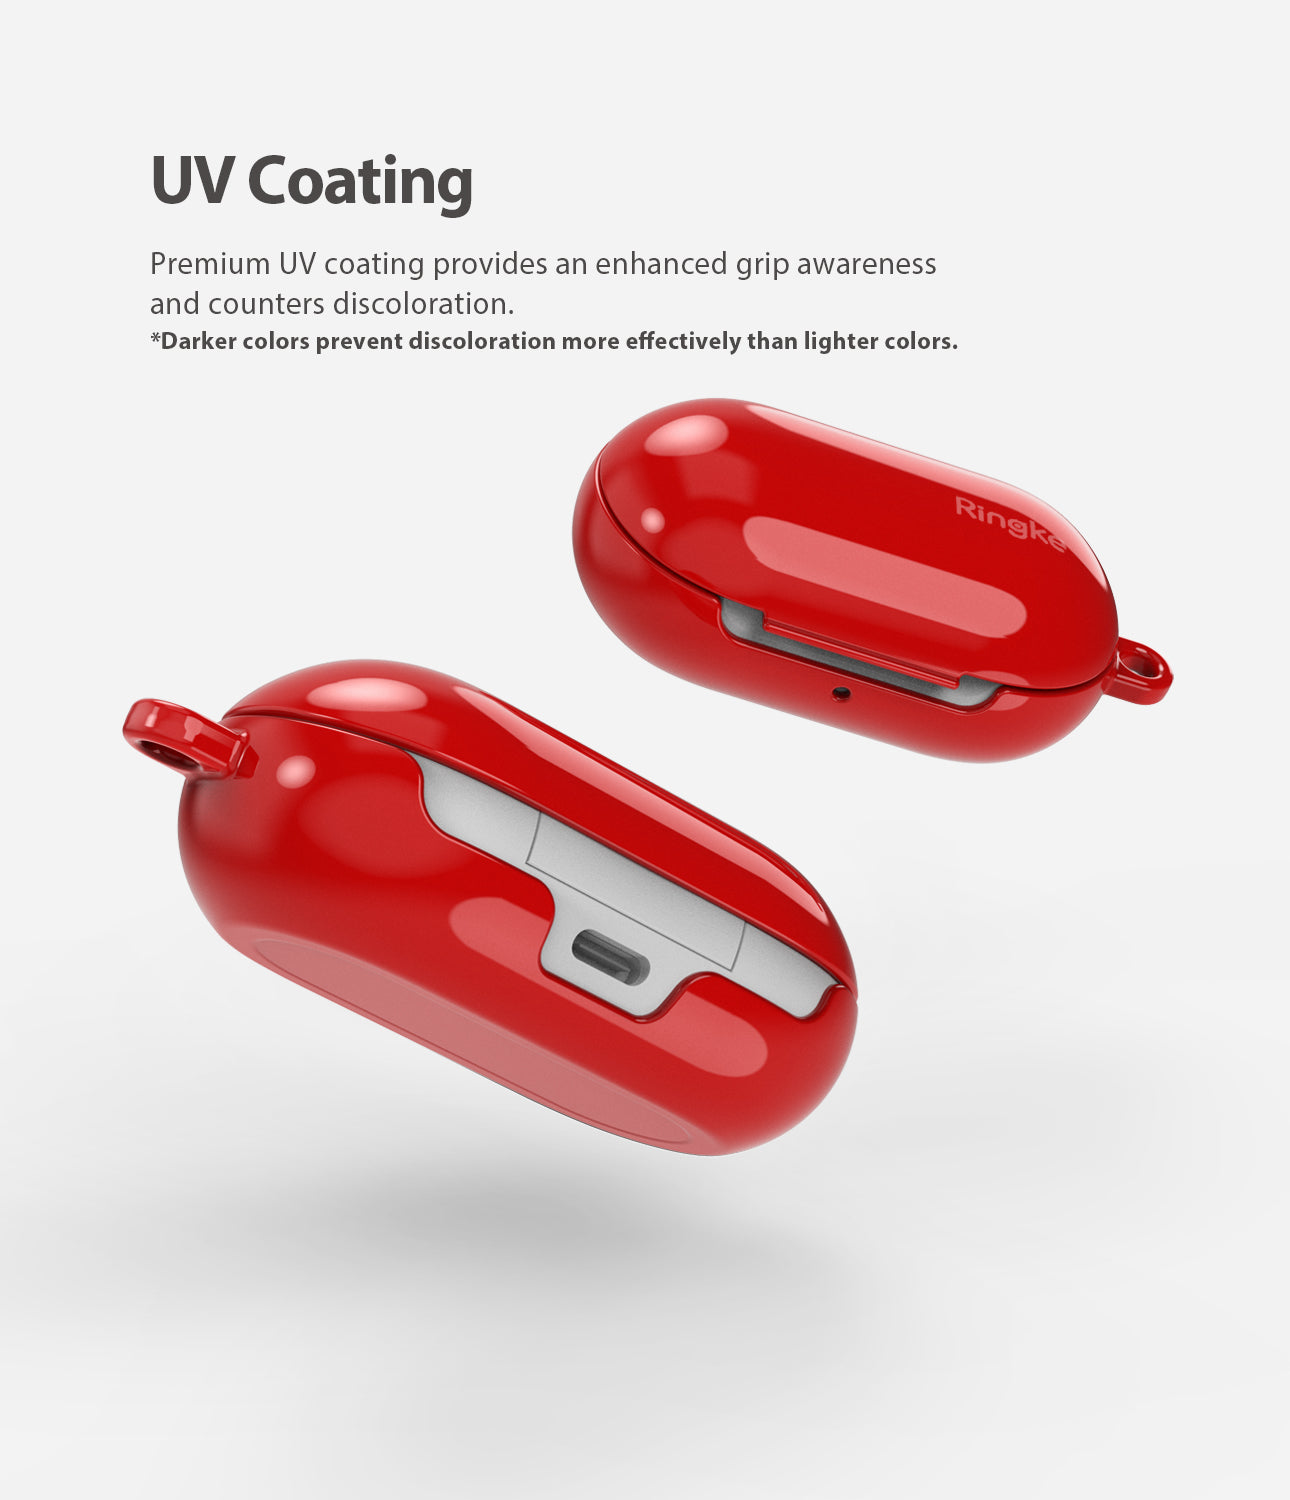 premium uv coating provides an enhanced grip awareness and counters discoloration